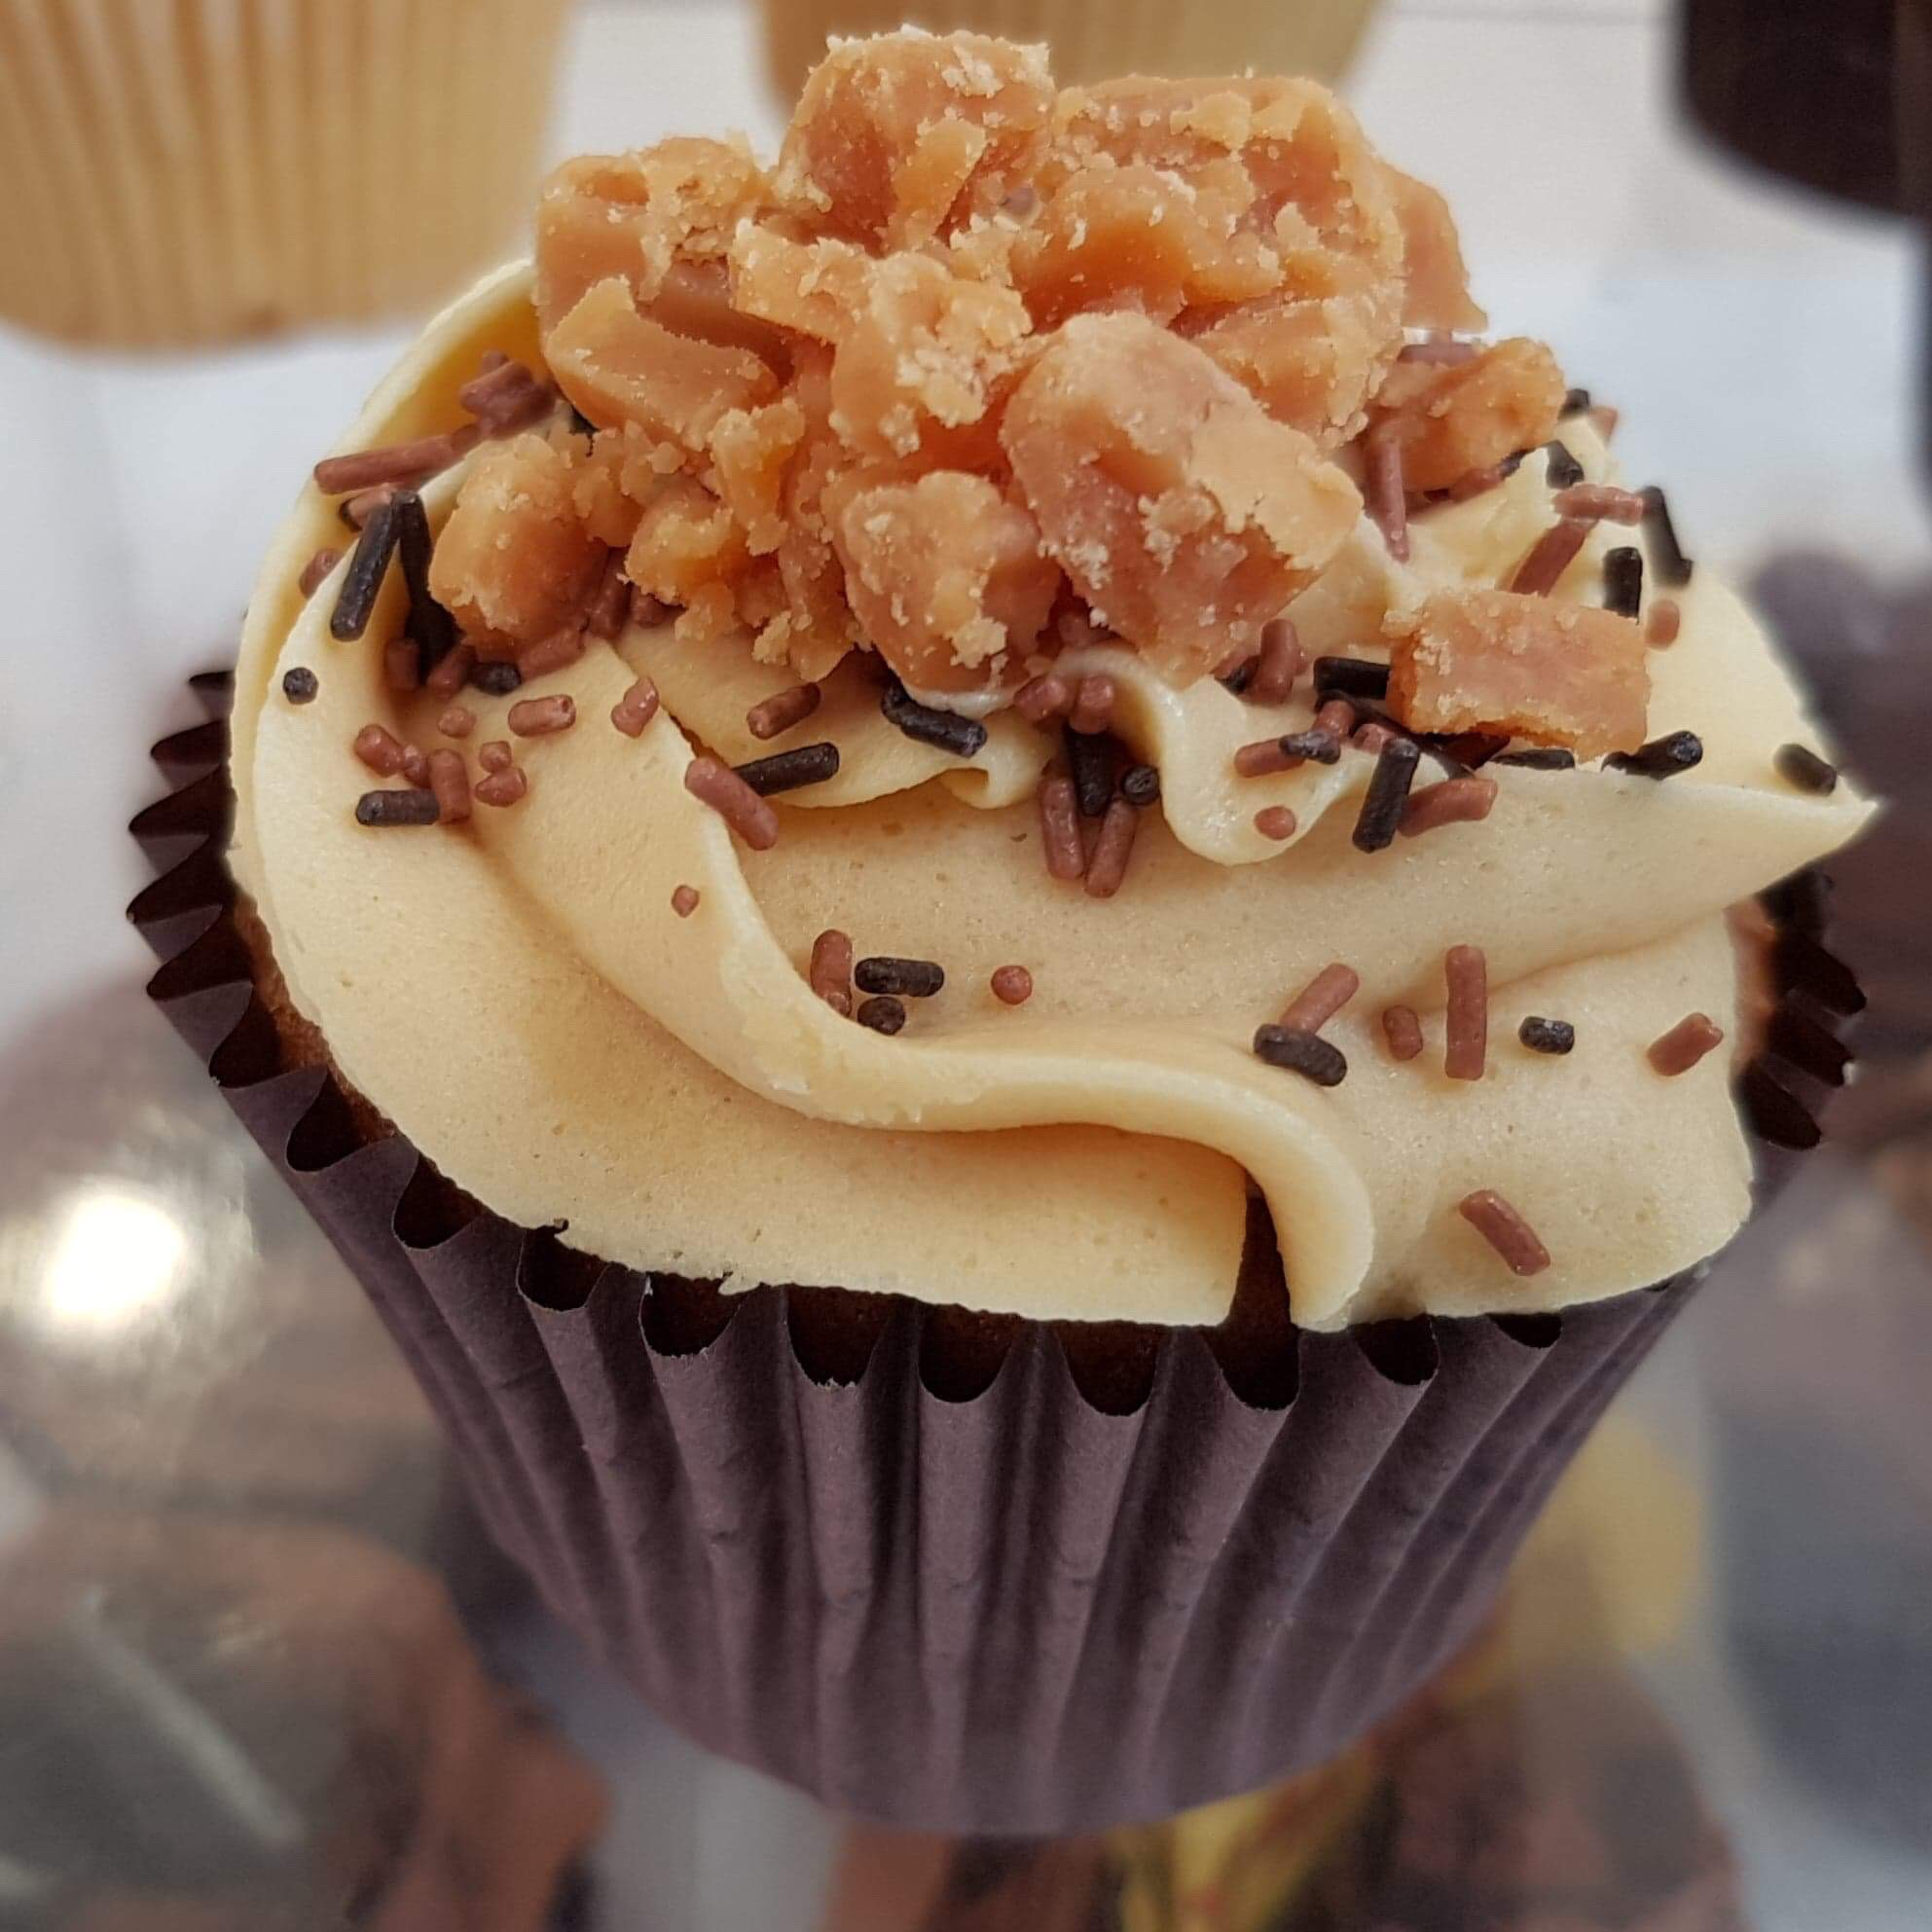 Subtle salted caramel sponge topped with yummy salted caramel flavoured buttercream